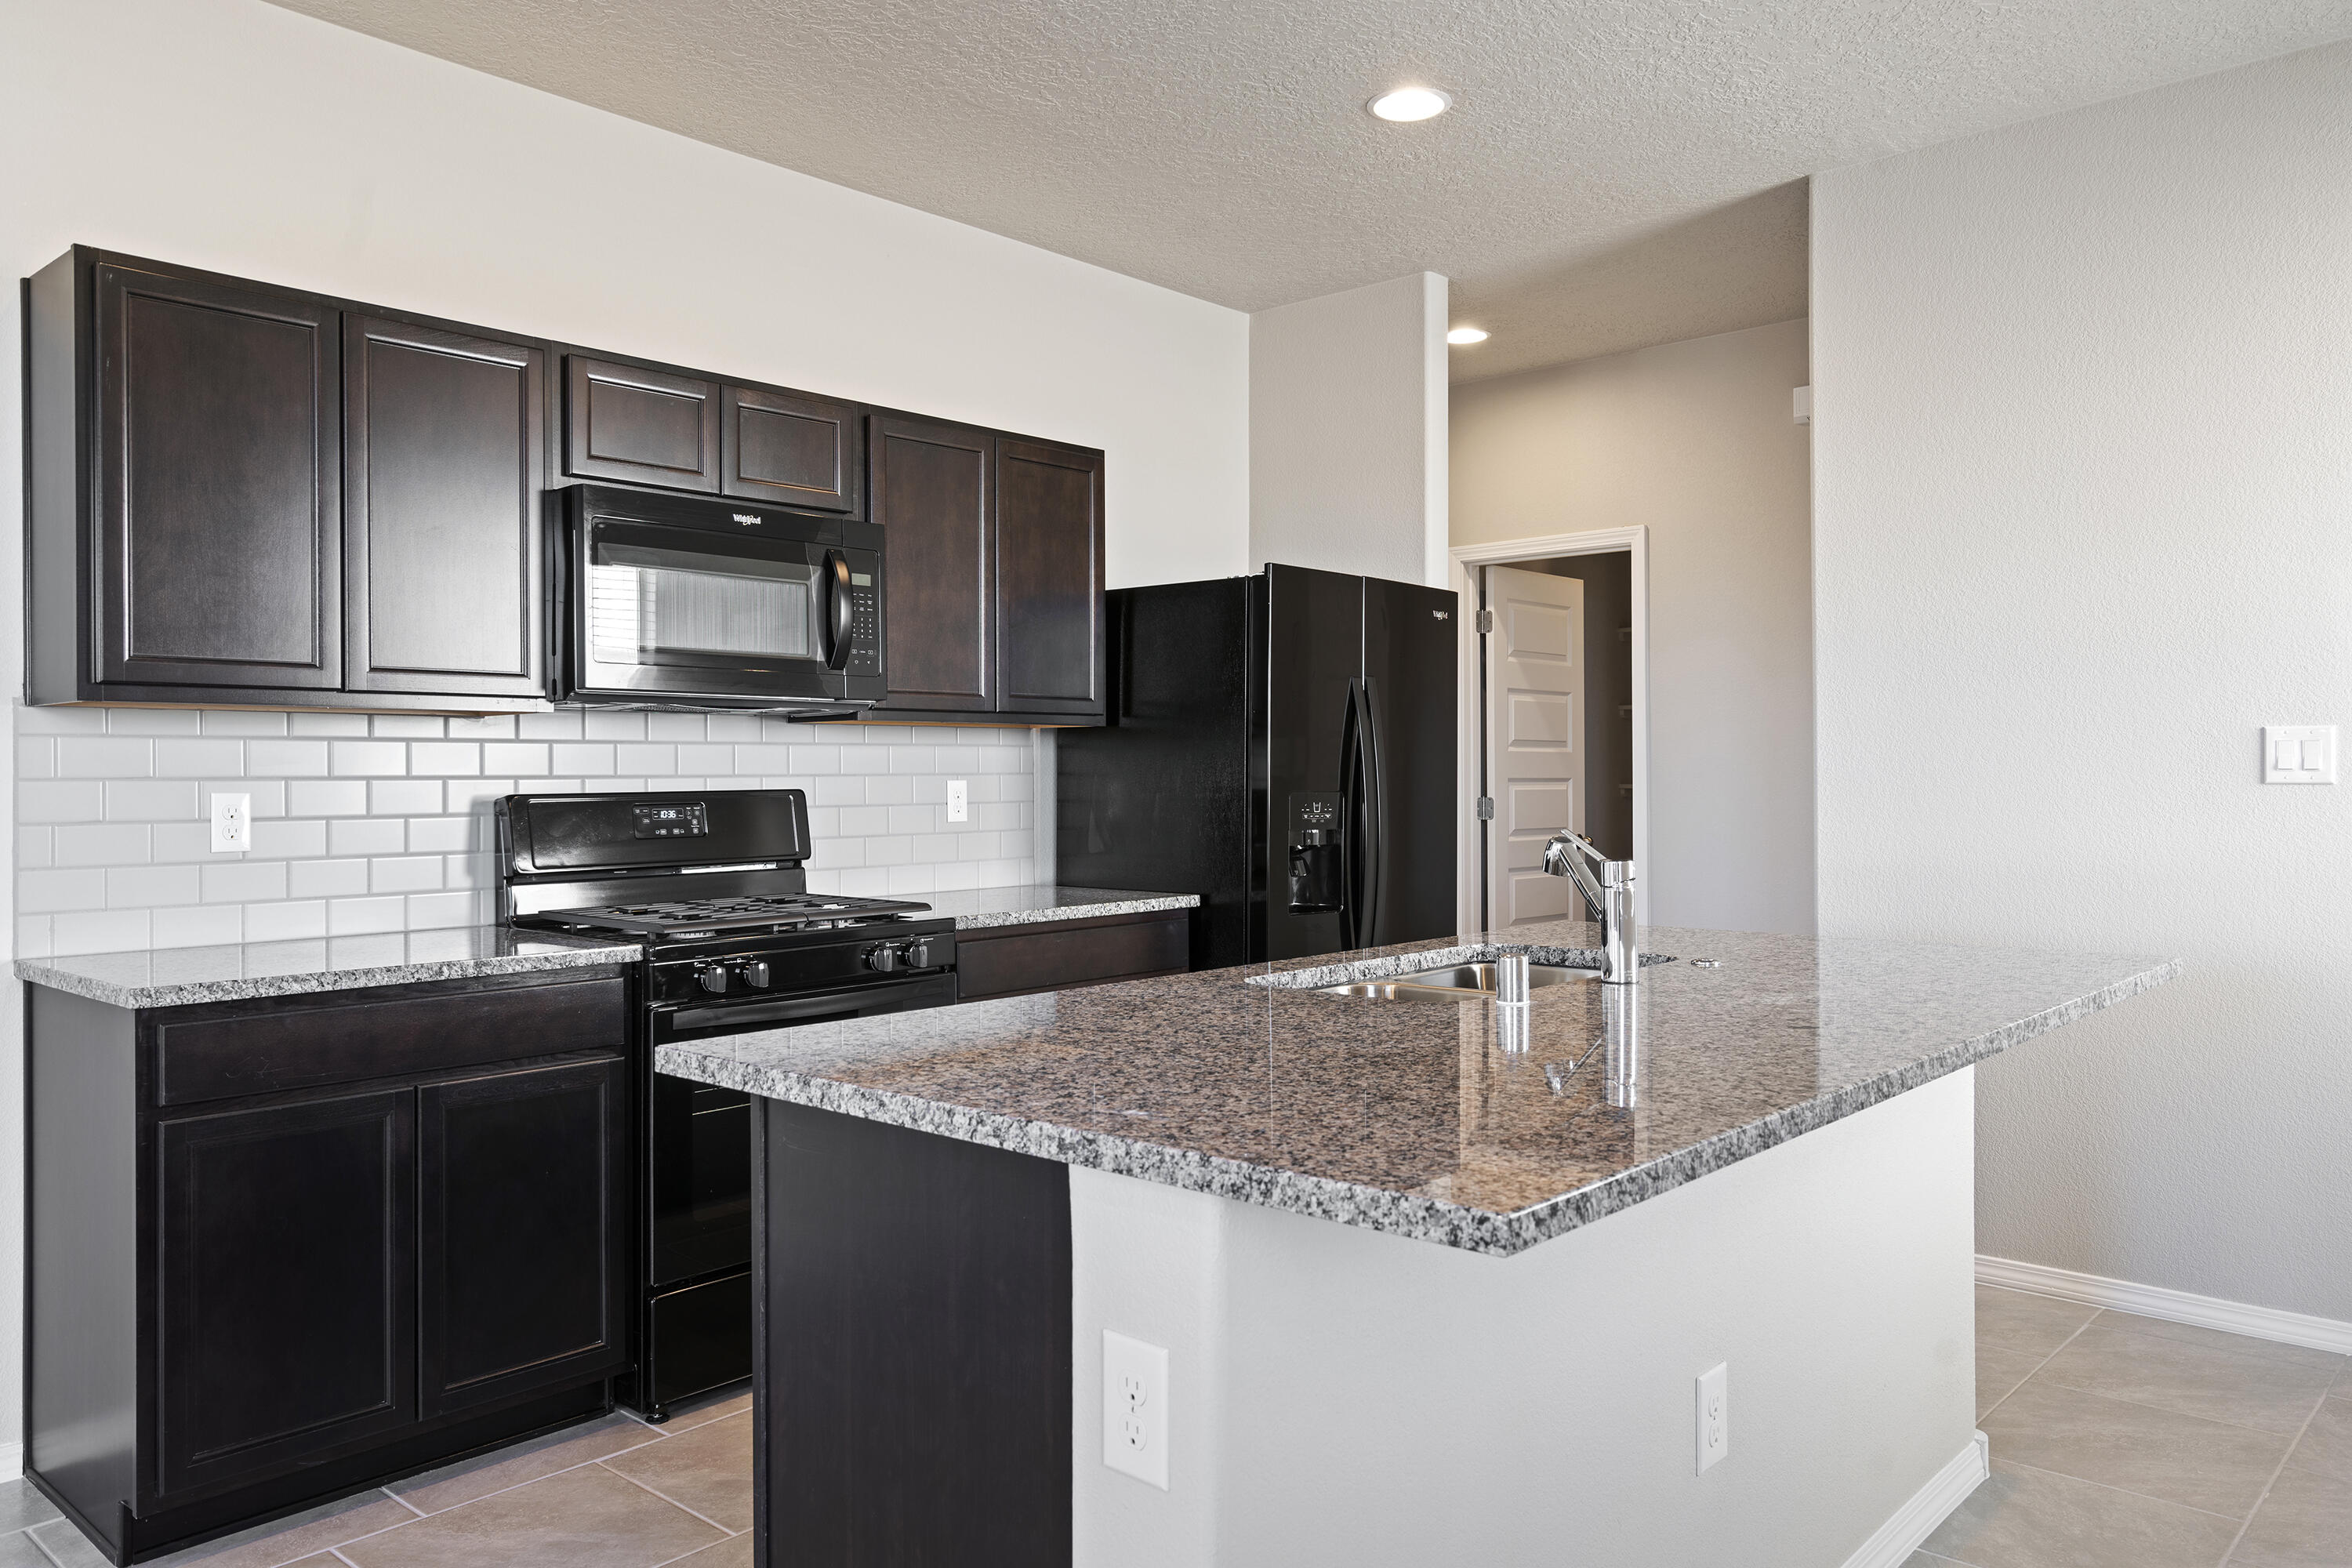 The Sierra plan is one of our brand new floorplans that we are offering here in Los Diamantes! This three bedroom two bath home is loaded with energy saving features as well as features that most builders consider to be upgrades like granite counter tops, tile flooring in the wet areas and 9 ft. ceilings. Unbeatable location with endless possibilities!